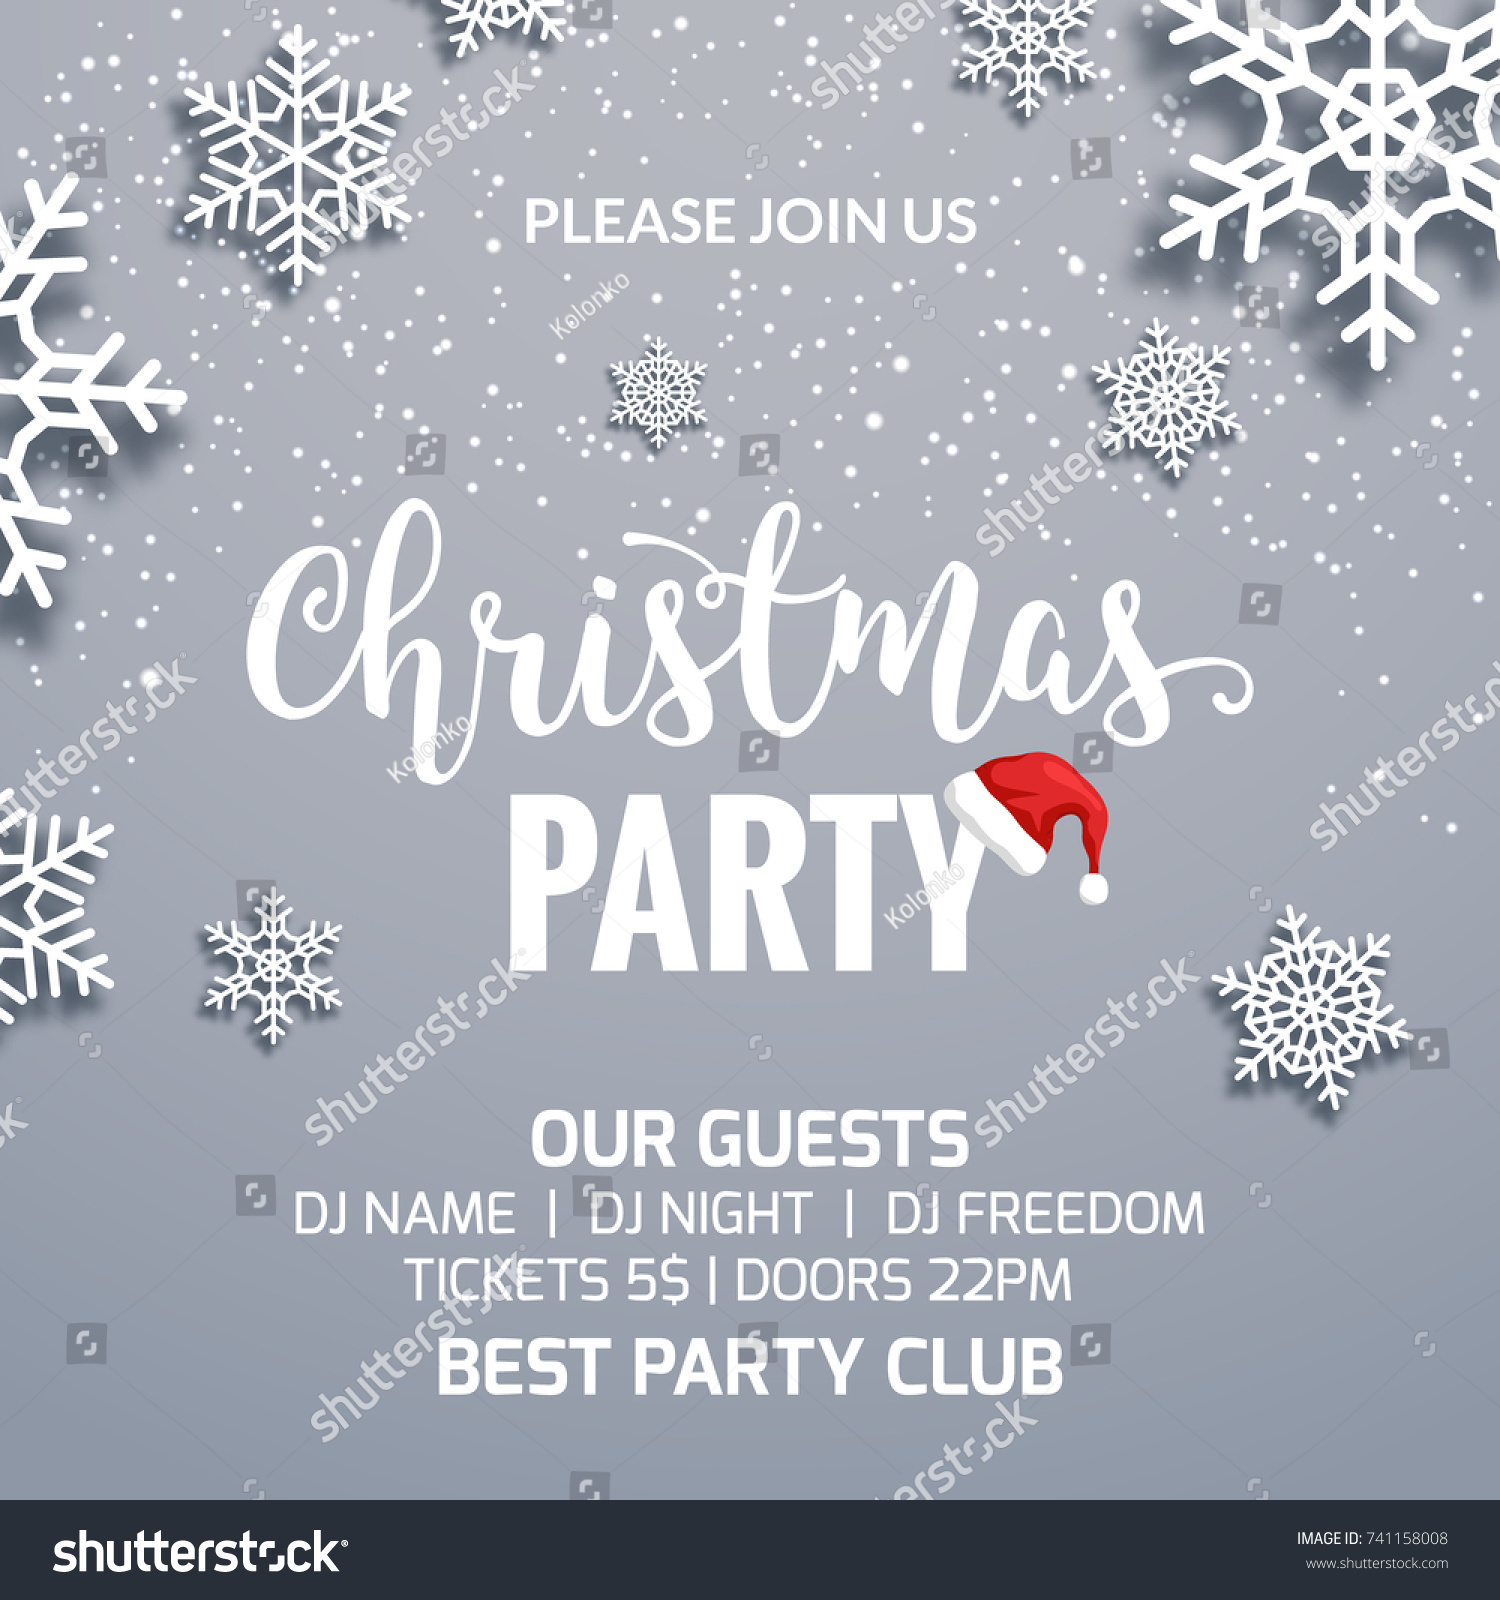 Christmas Party Poster Invitation Decoration Design Stock Vector ...